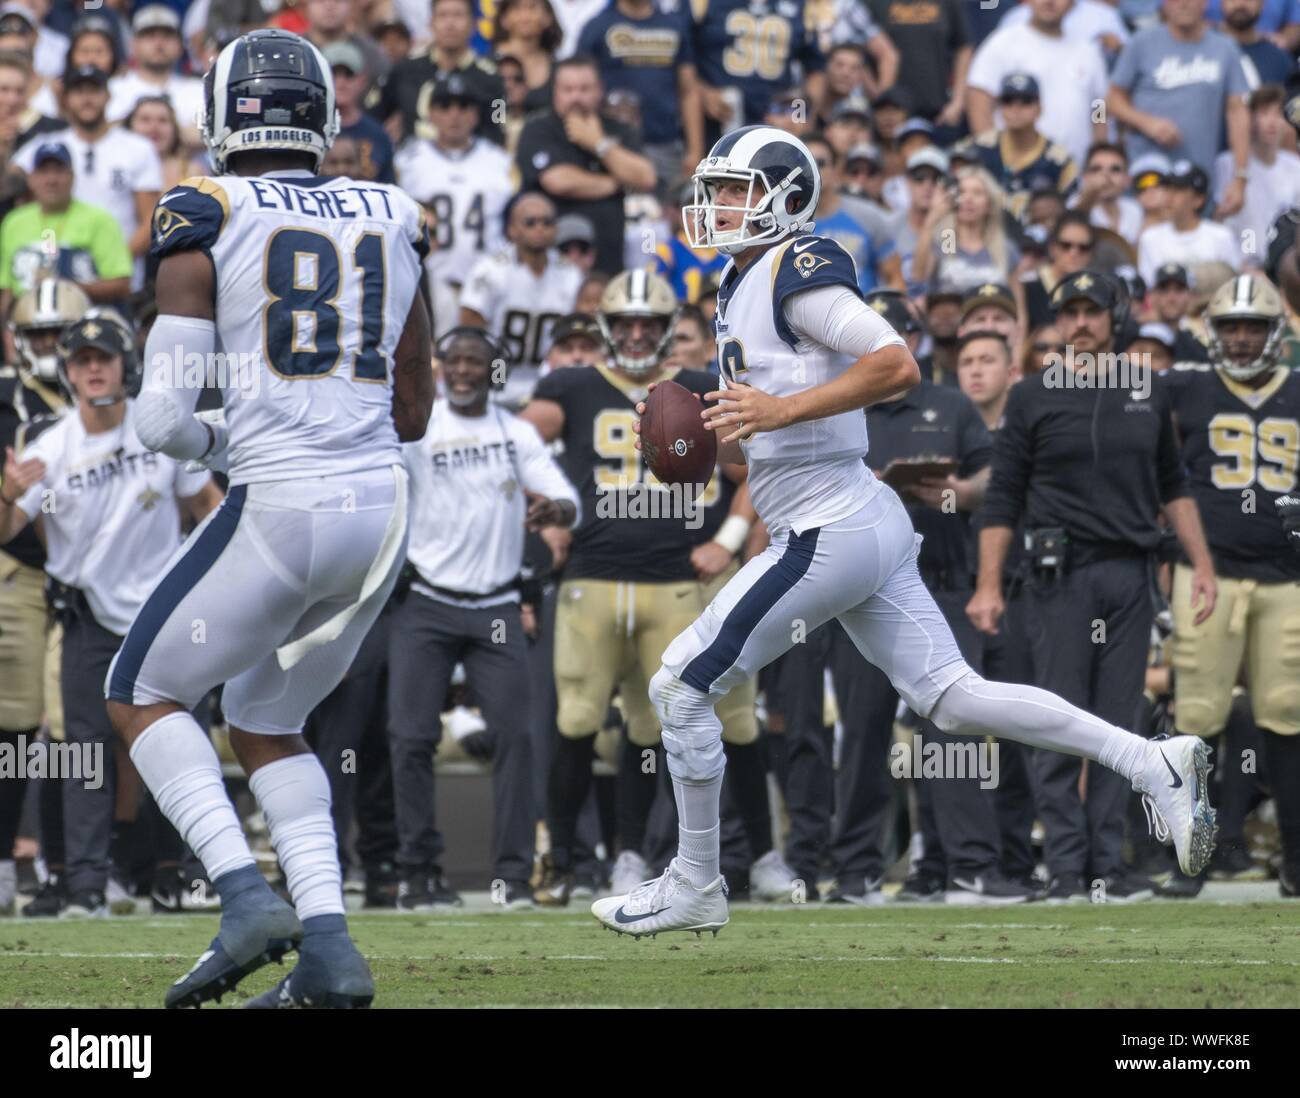 Los Angeles, United States. 15th Sep, 2019. Los Angeles Rams quarterback Jared Goff (16) looks for a receiver at the Los Angeles Memorial Coliseum in Los Angeles, California on Sunday, September 15, 2019. The Rams defeated the Saints 27 - 9 to open their home season. Photo by Michael Goulding/UPI Credit: UPI/Alamy Live News Stock Photo